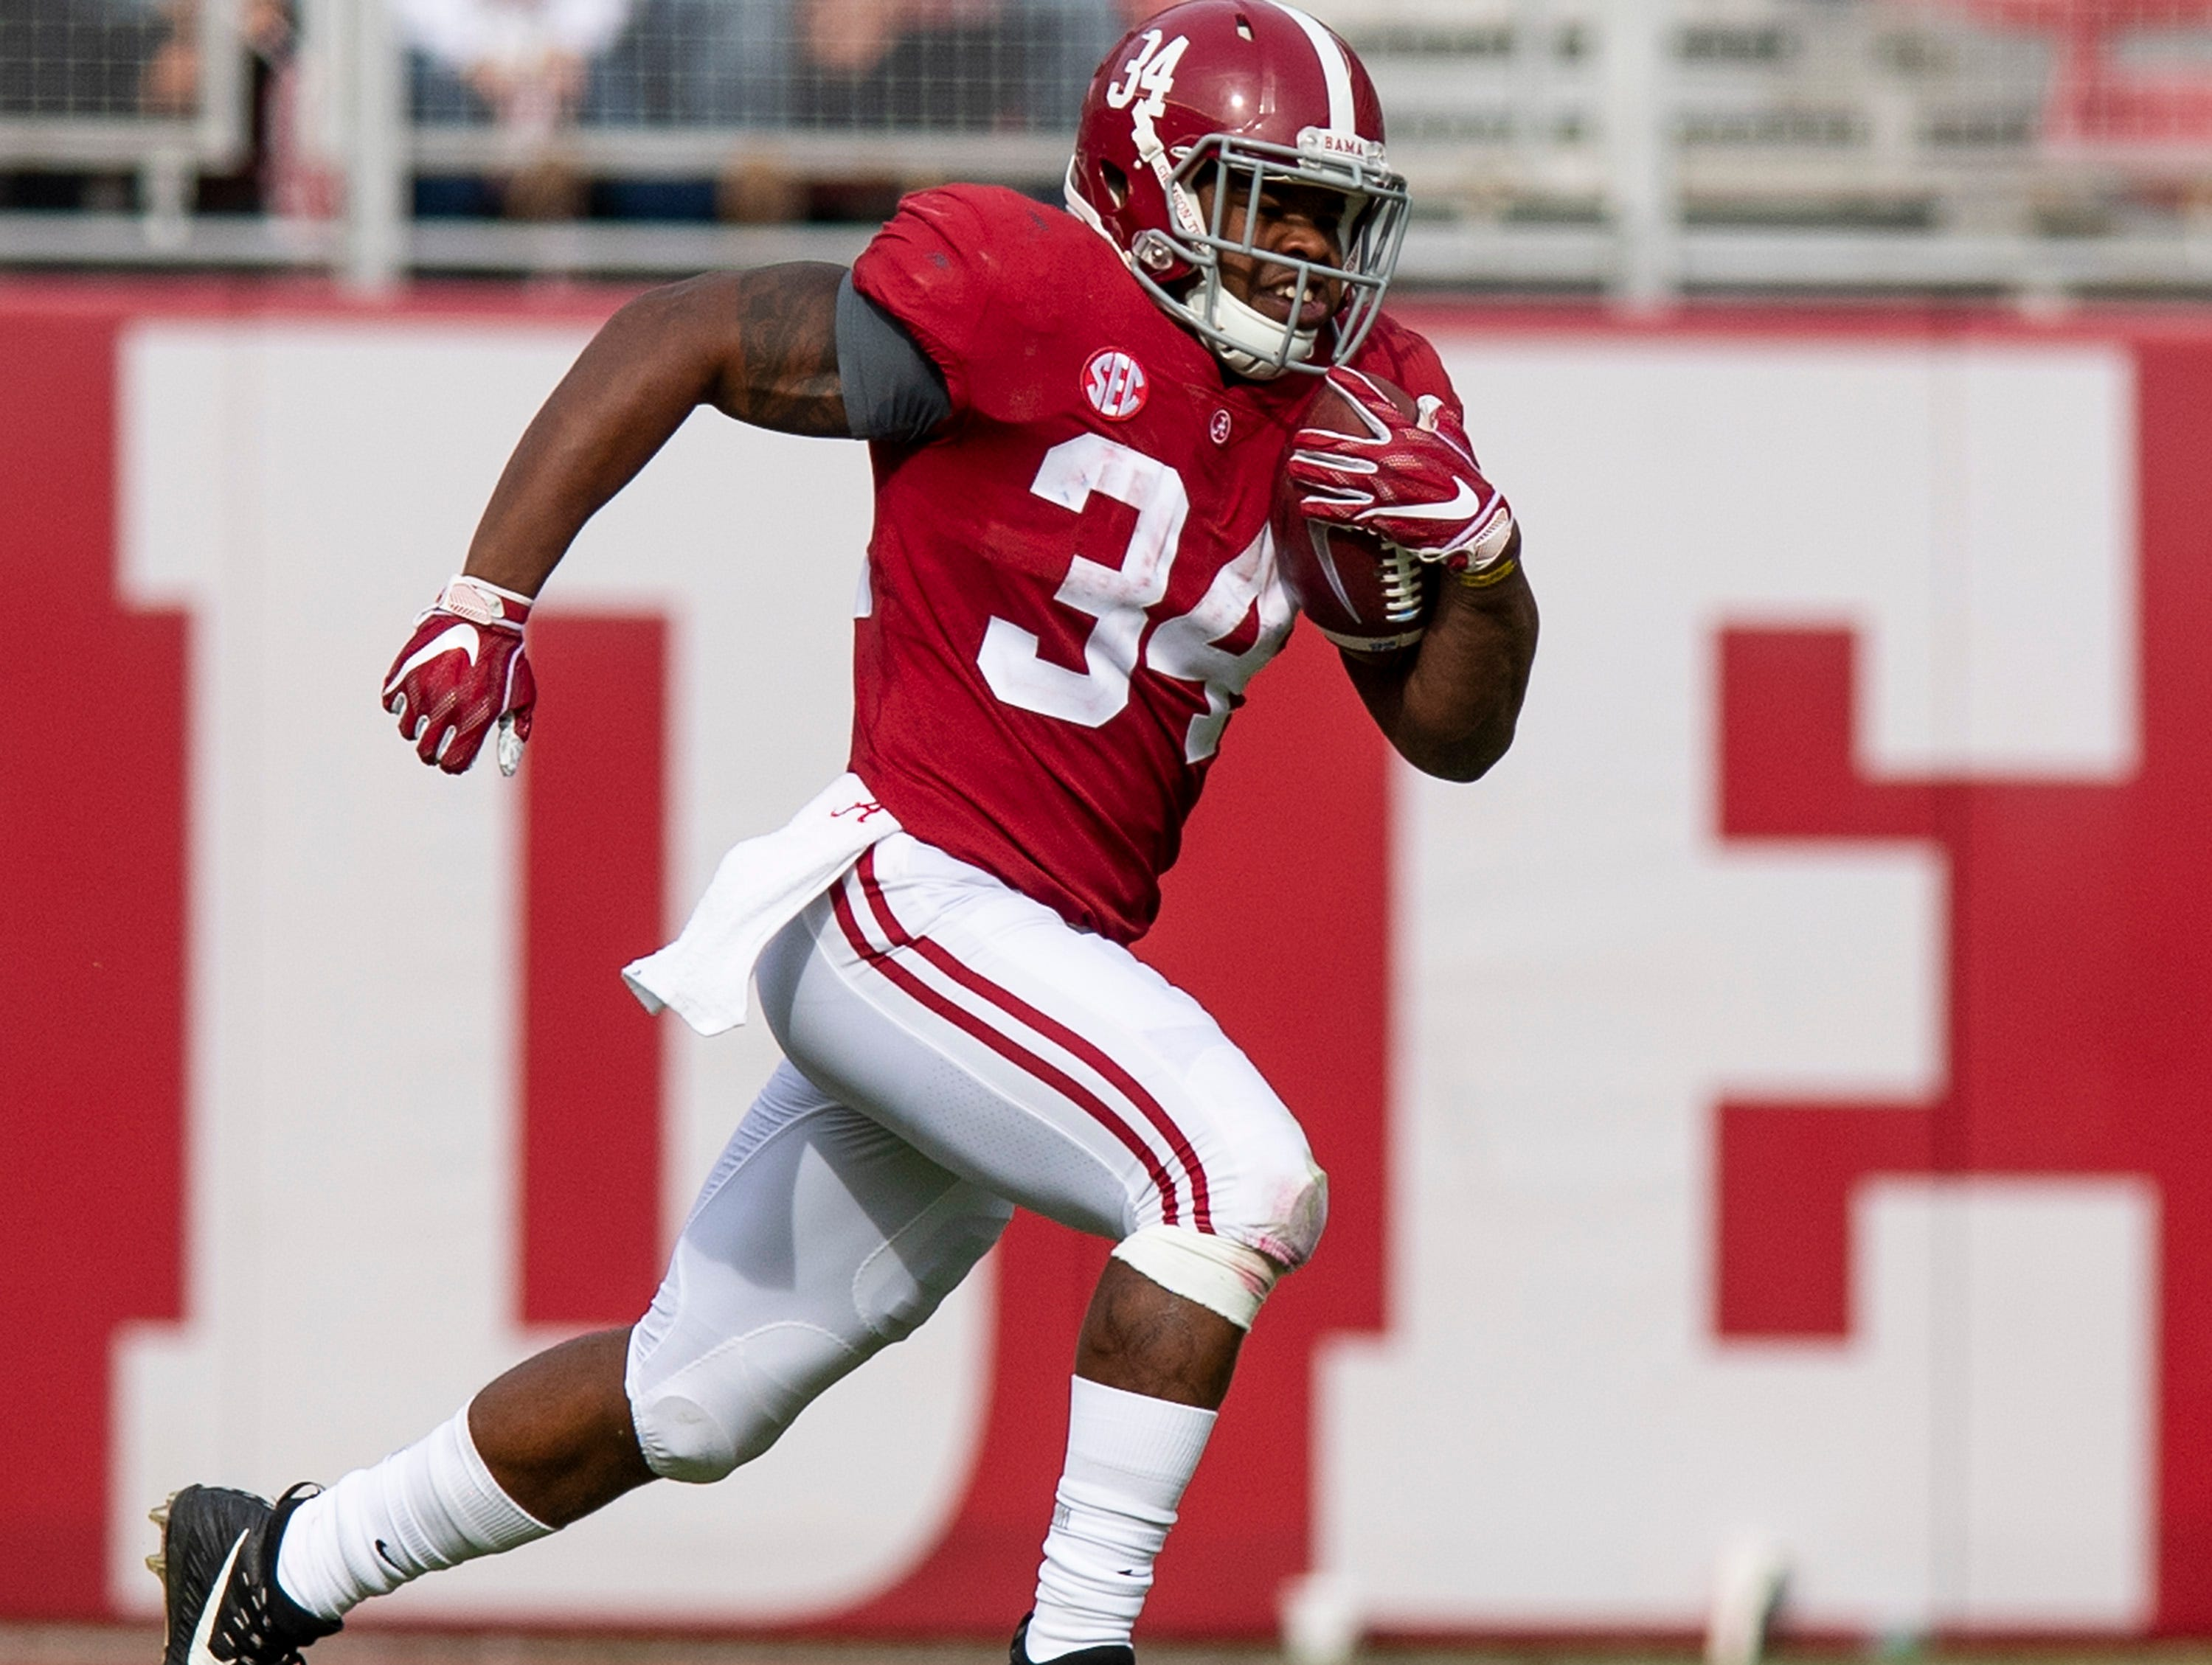 Alabama running back Damien Harris (34) carries the ball in second half against The Citadel action at Bryant-Denny Stadium in Tuscaloosa, Ala., on Saturday November 17, 2018.